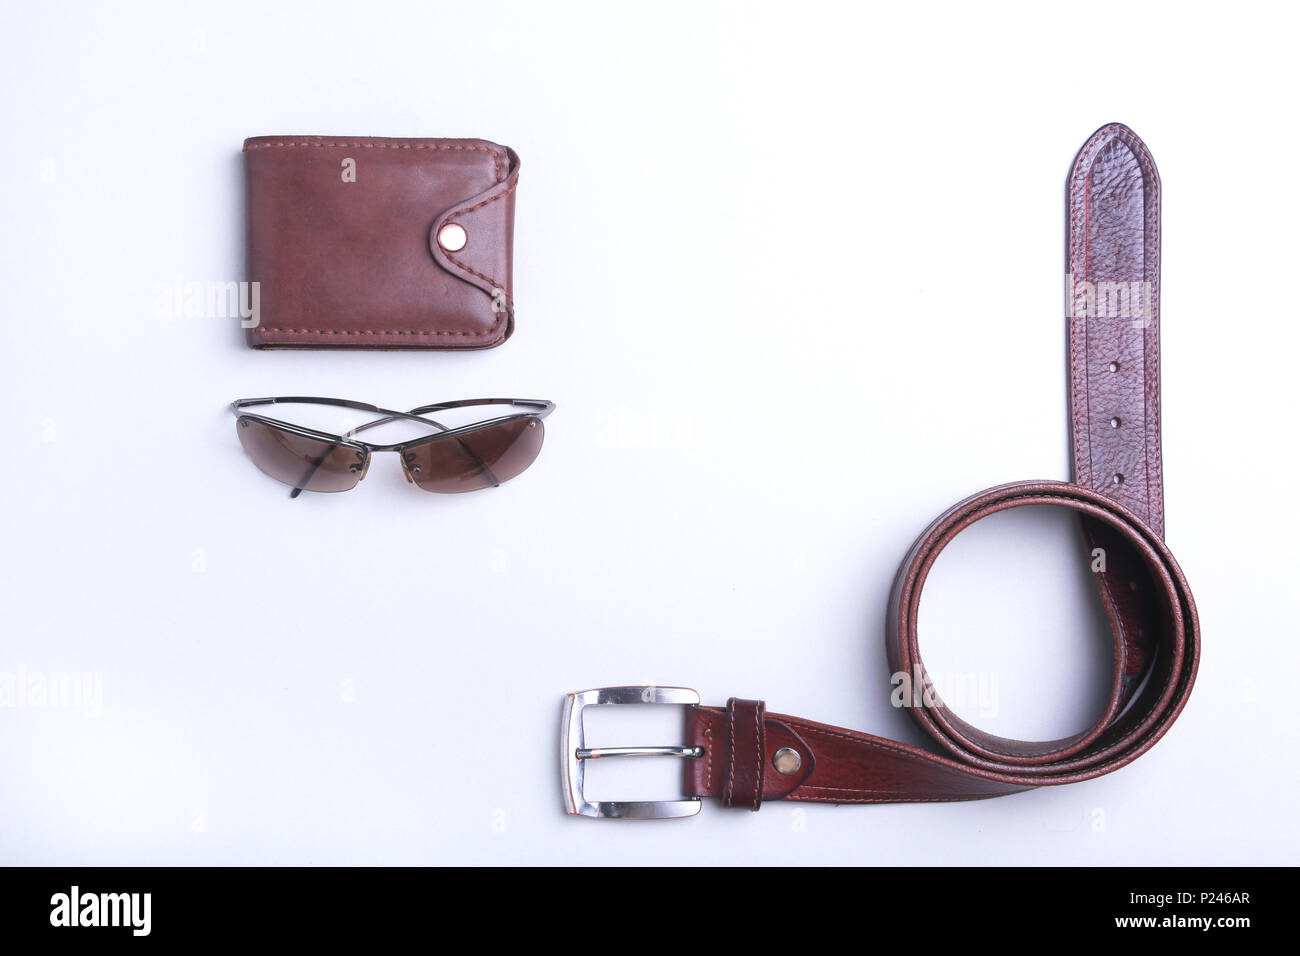 Men's accessories for business and rekreation. A professional studio photograph of men's business accessories. Top view composition - Stock Image